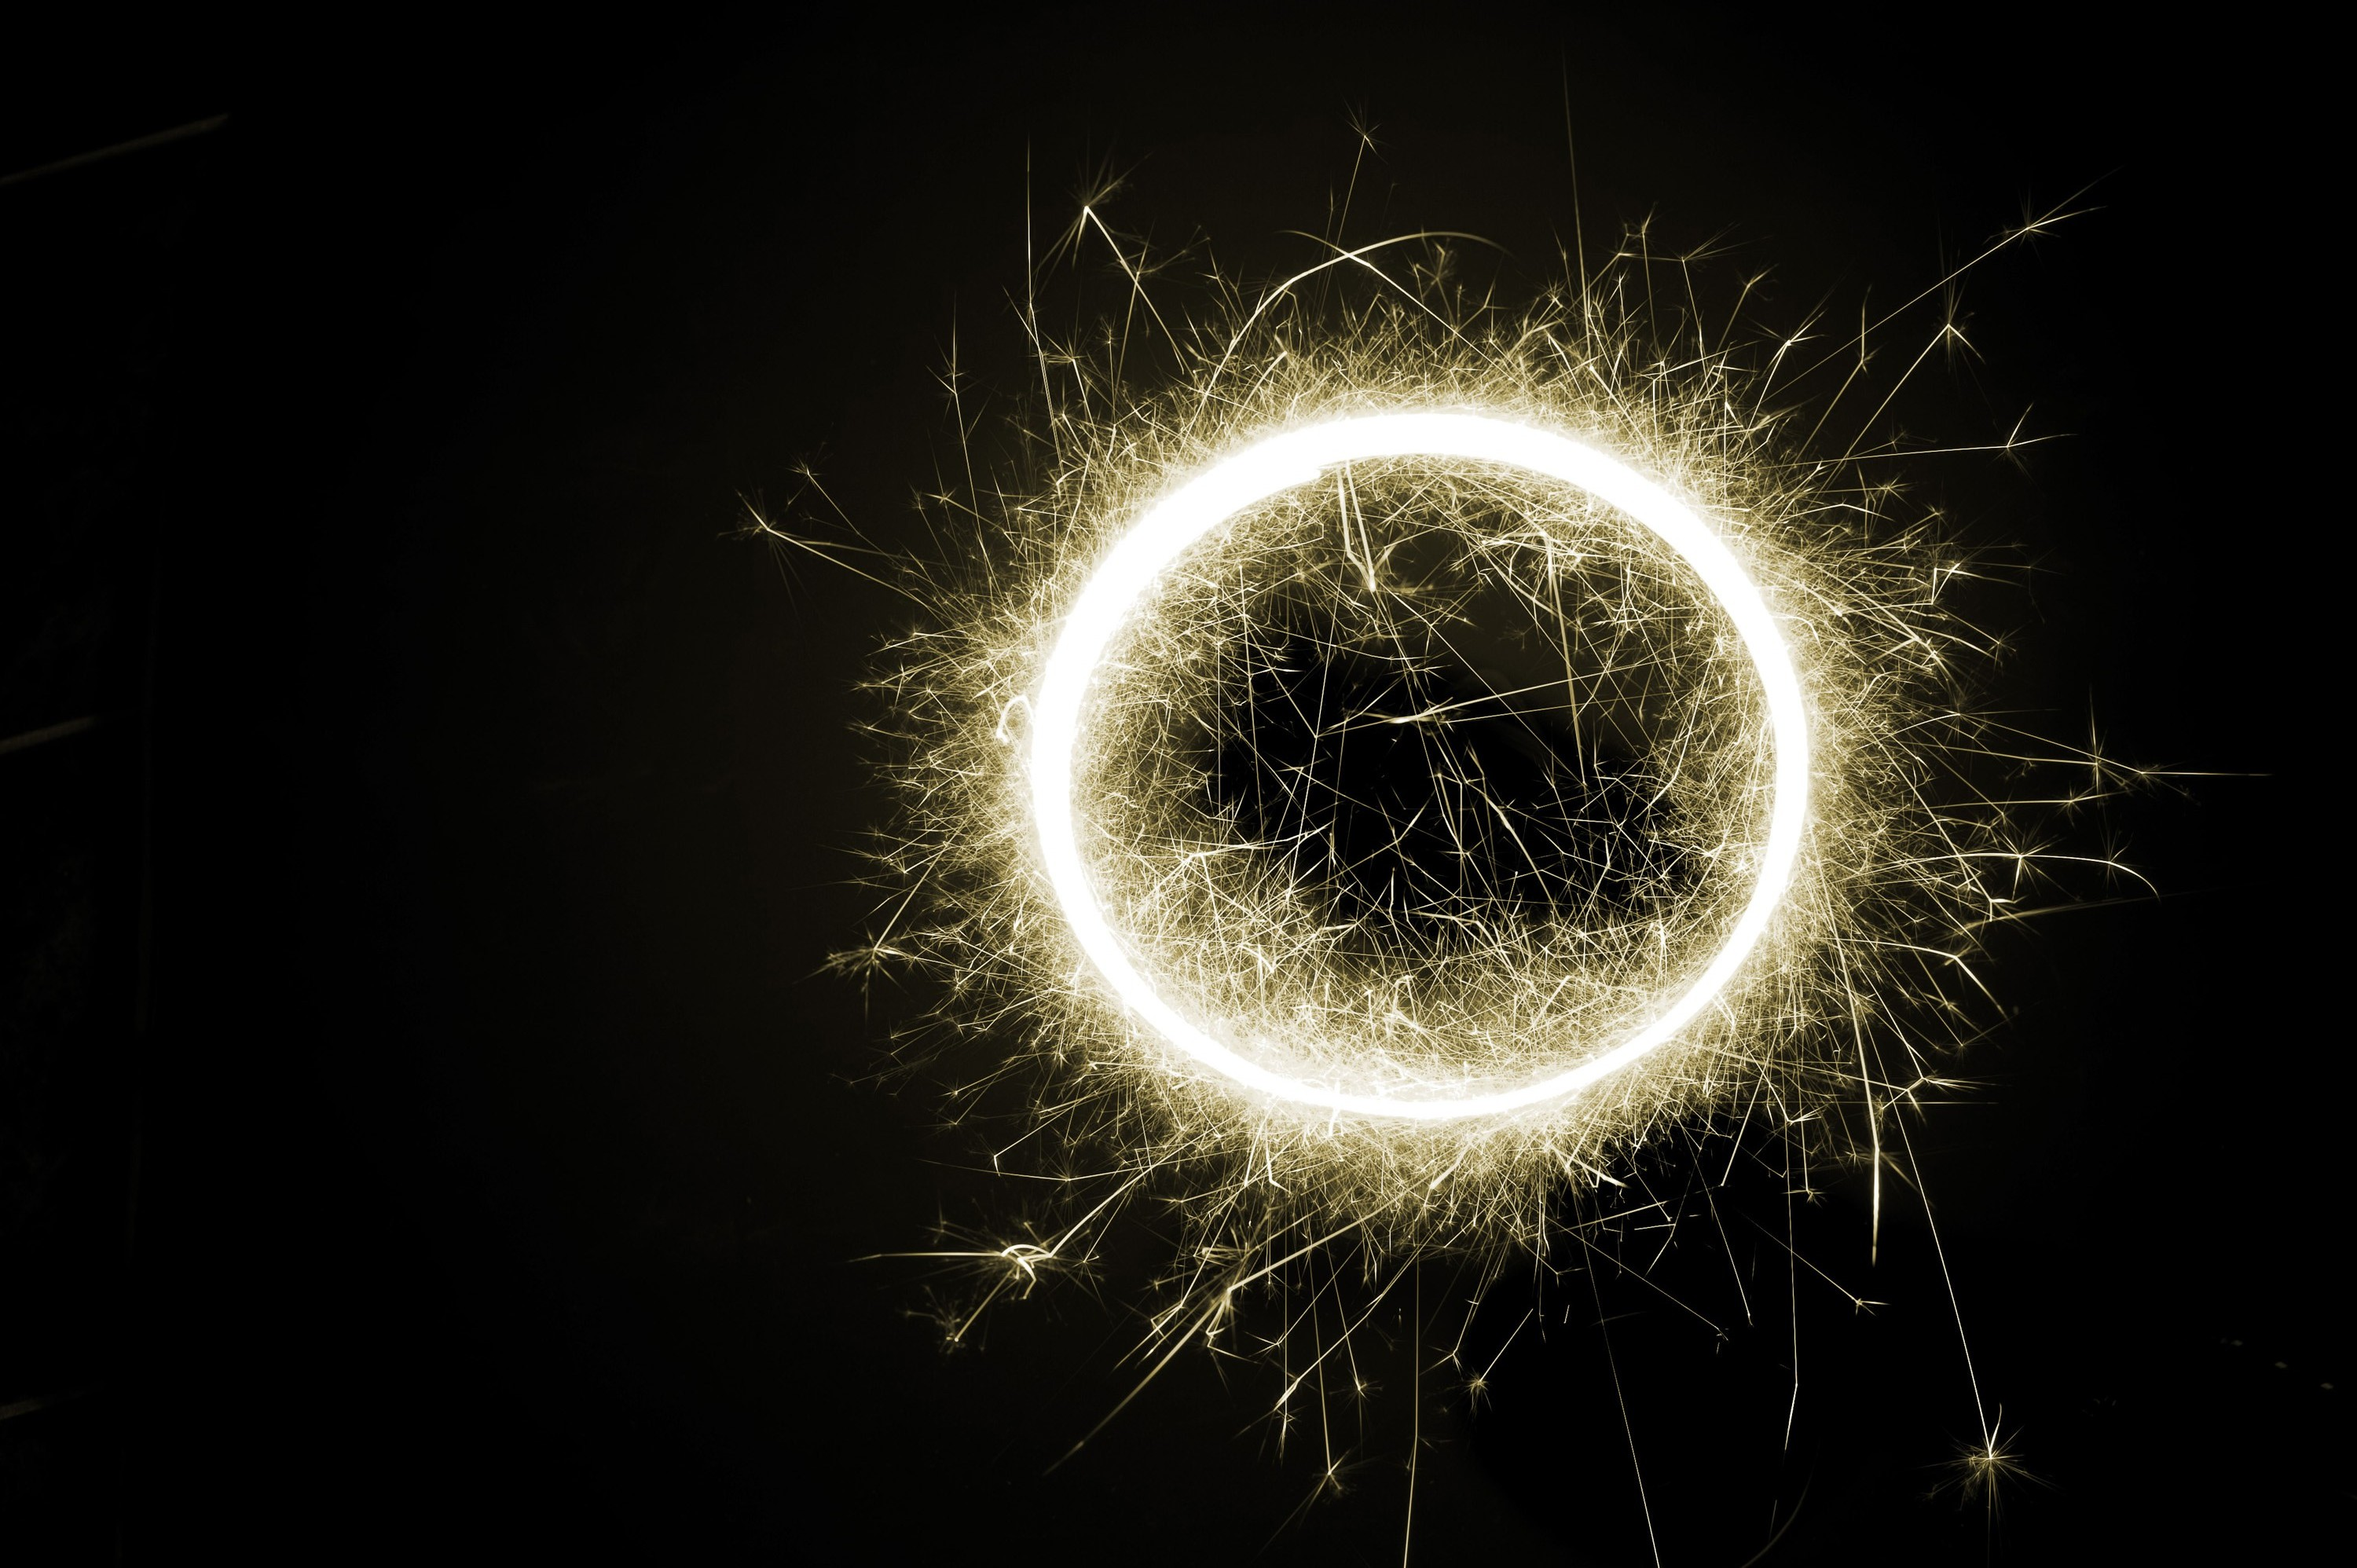 a circle of light surrounded by sparks